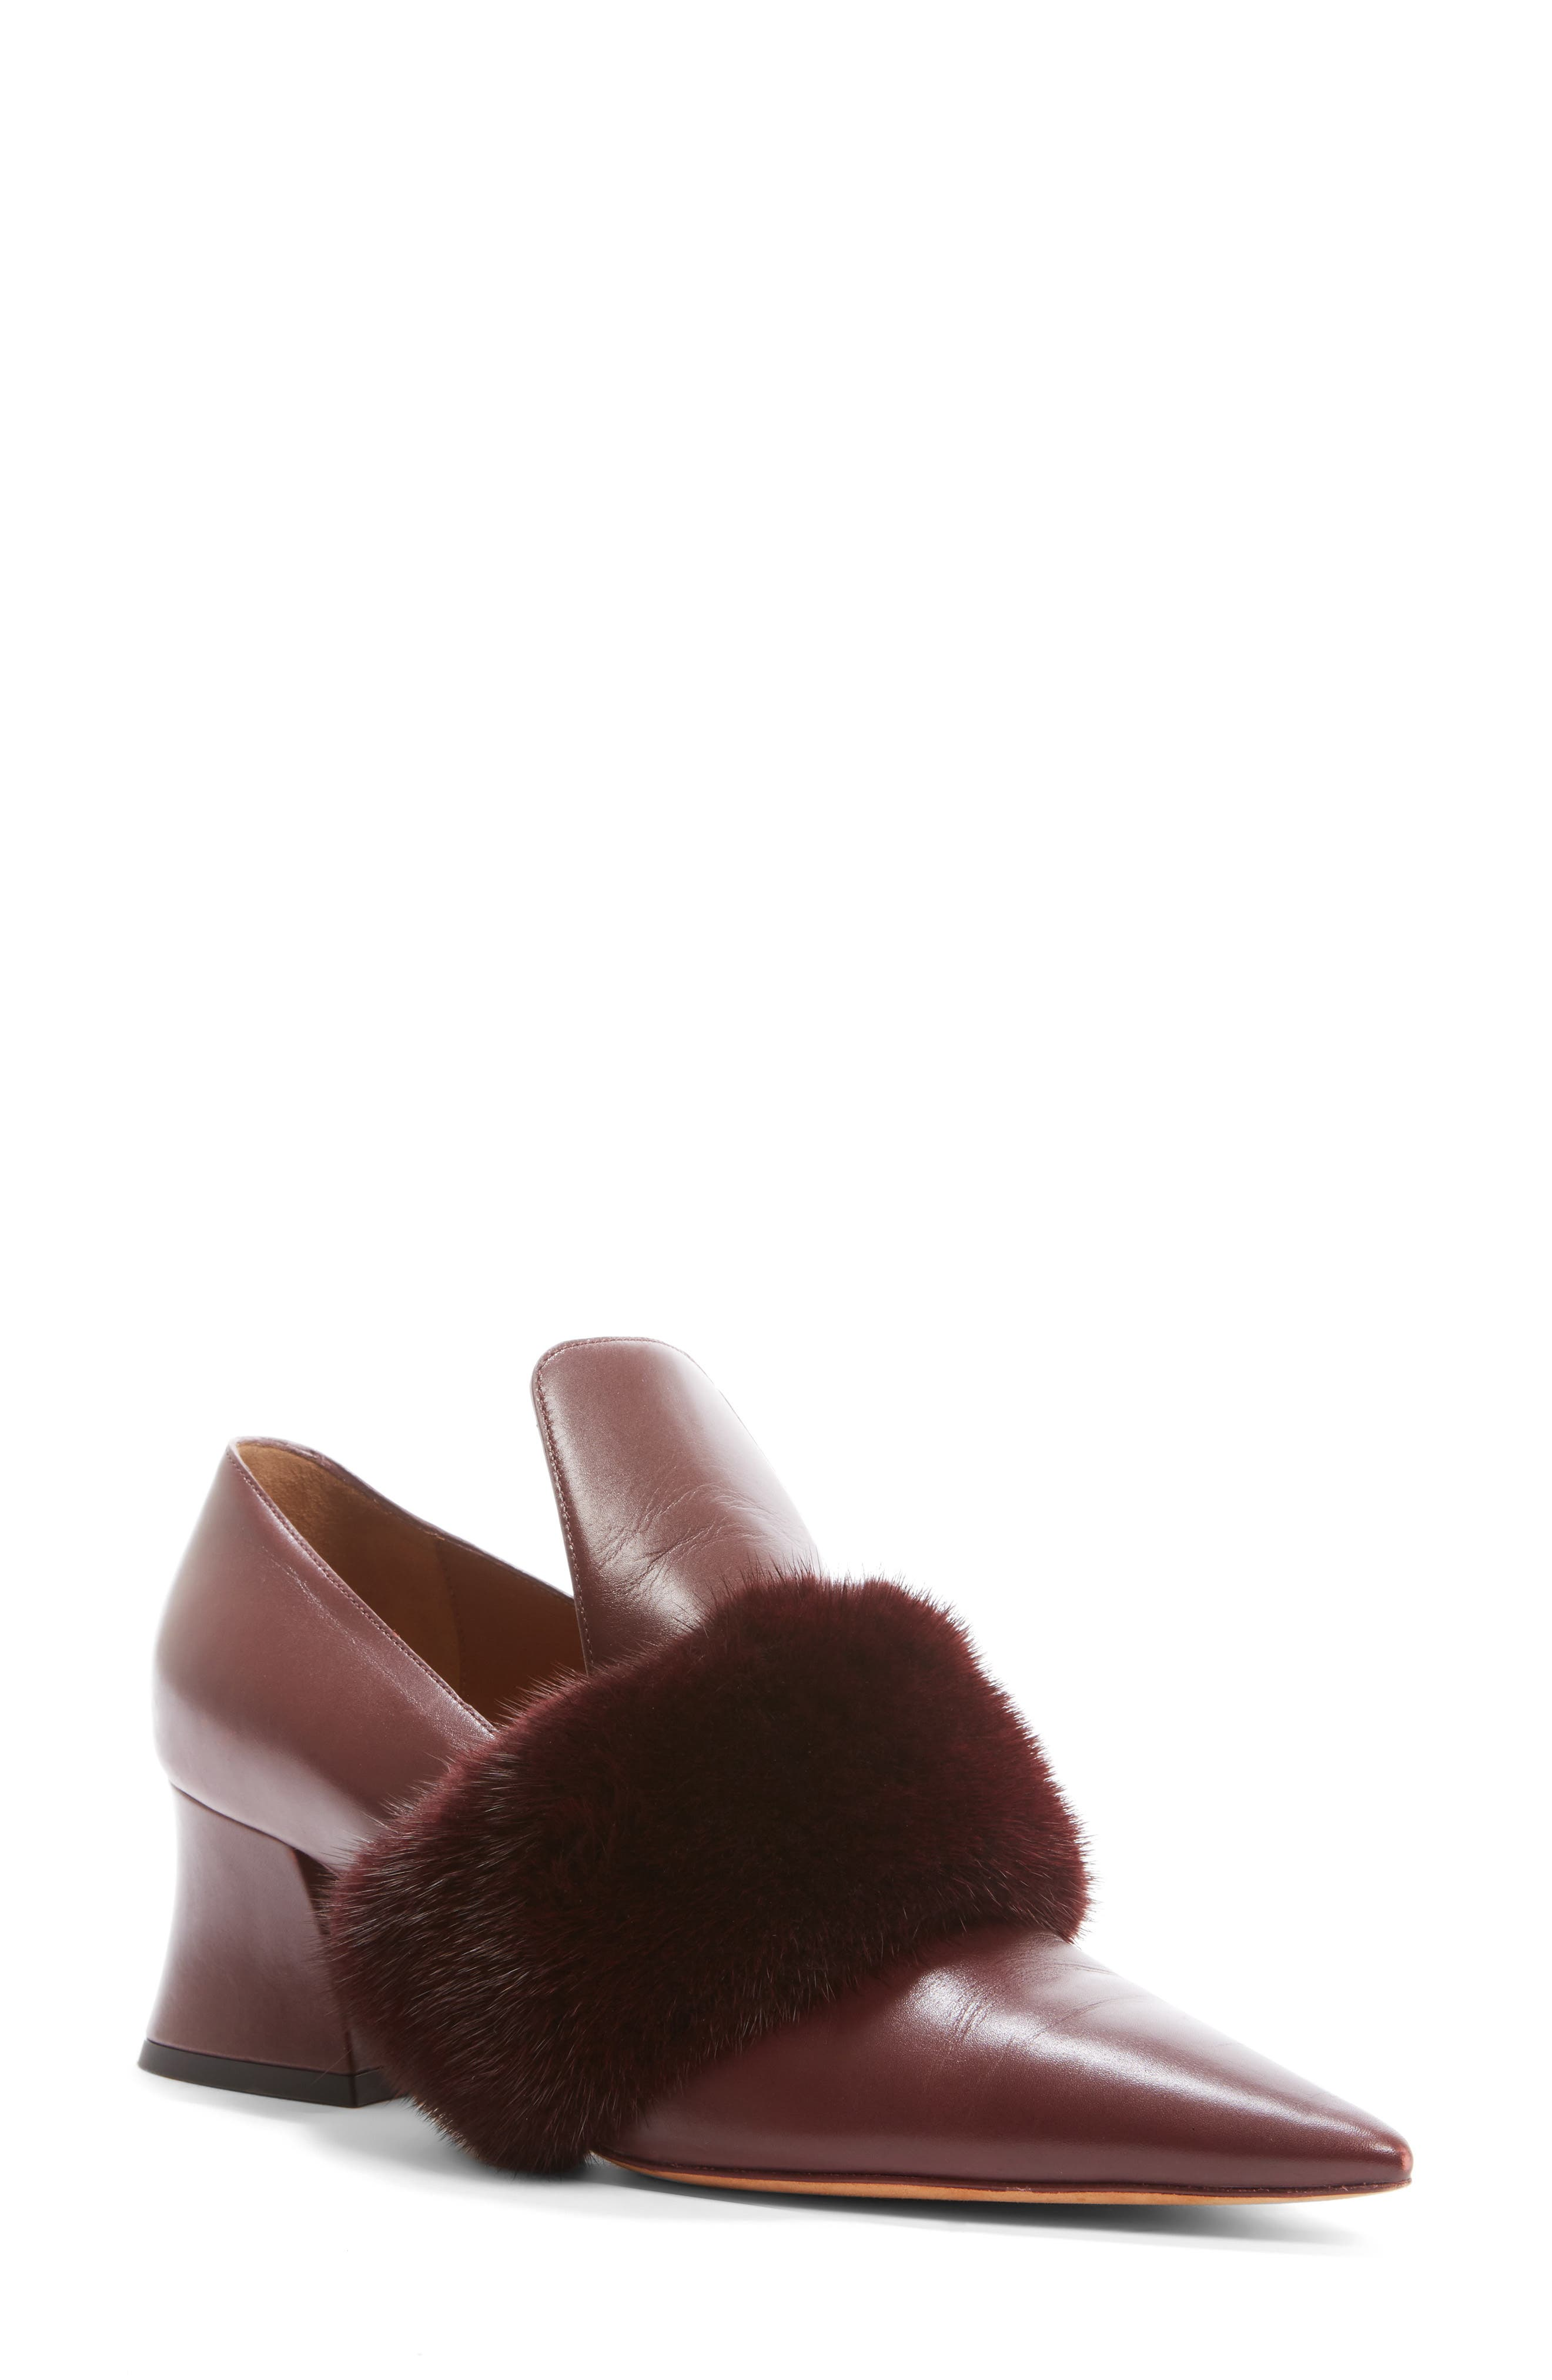 Givenchy Patricia Pump with Genuine Mink Fur Trim (Women)